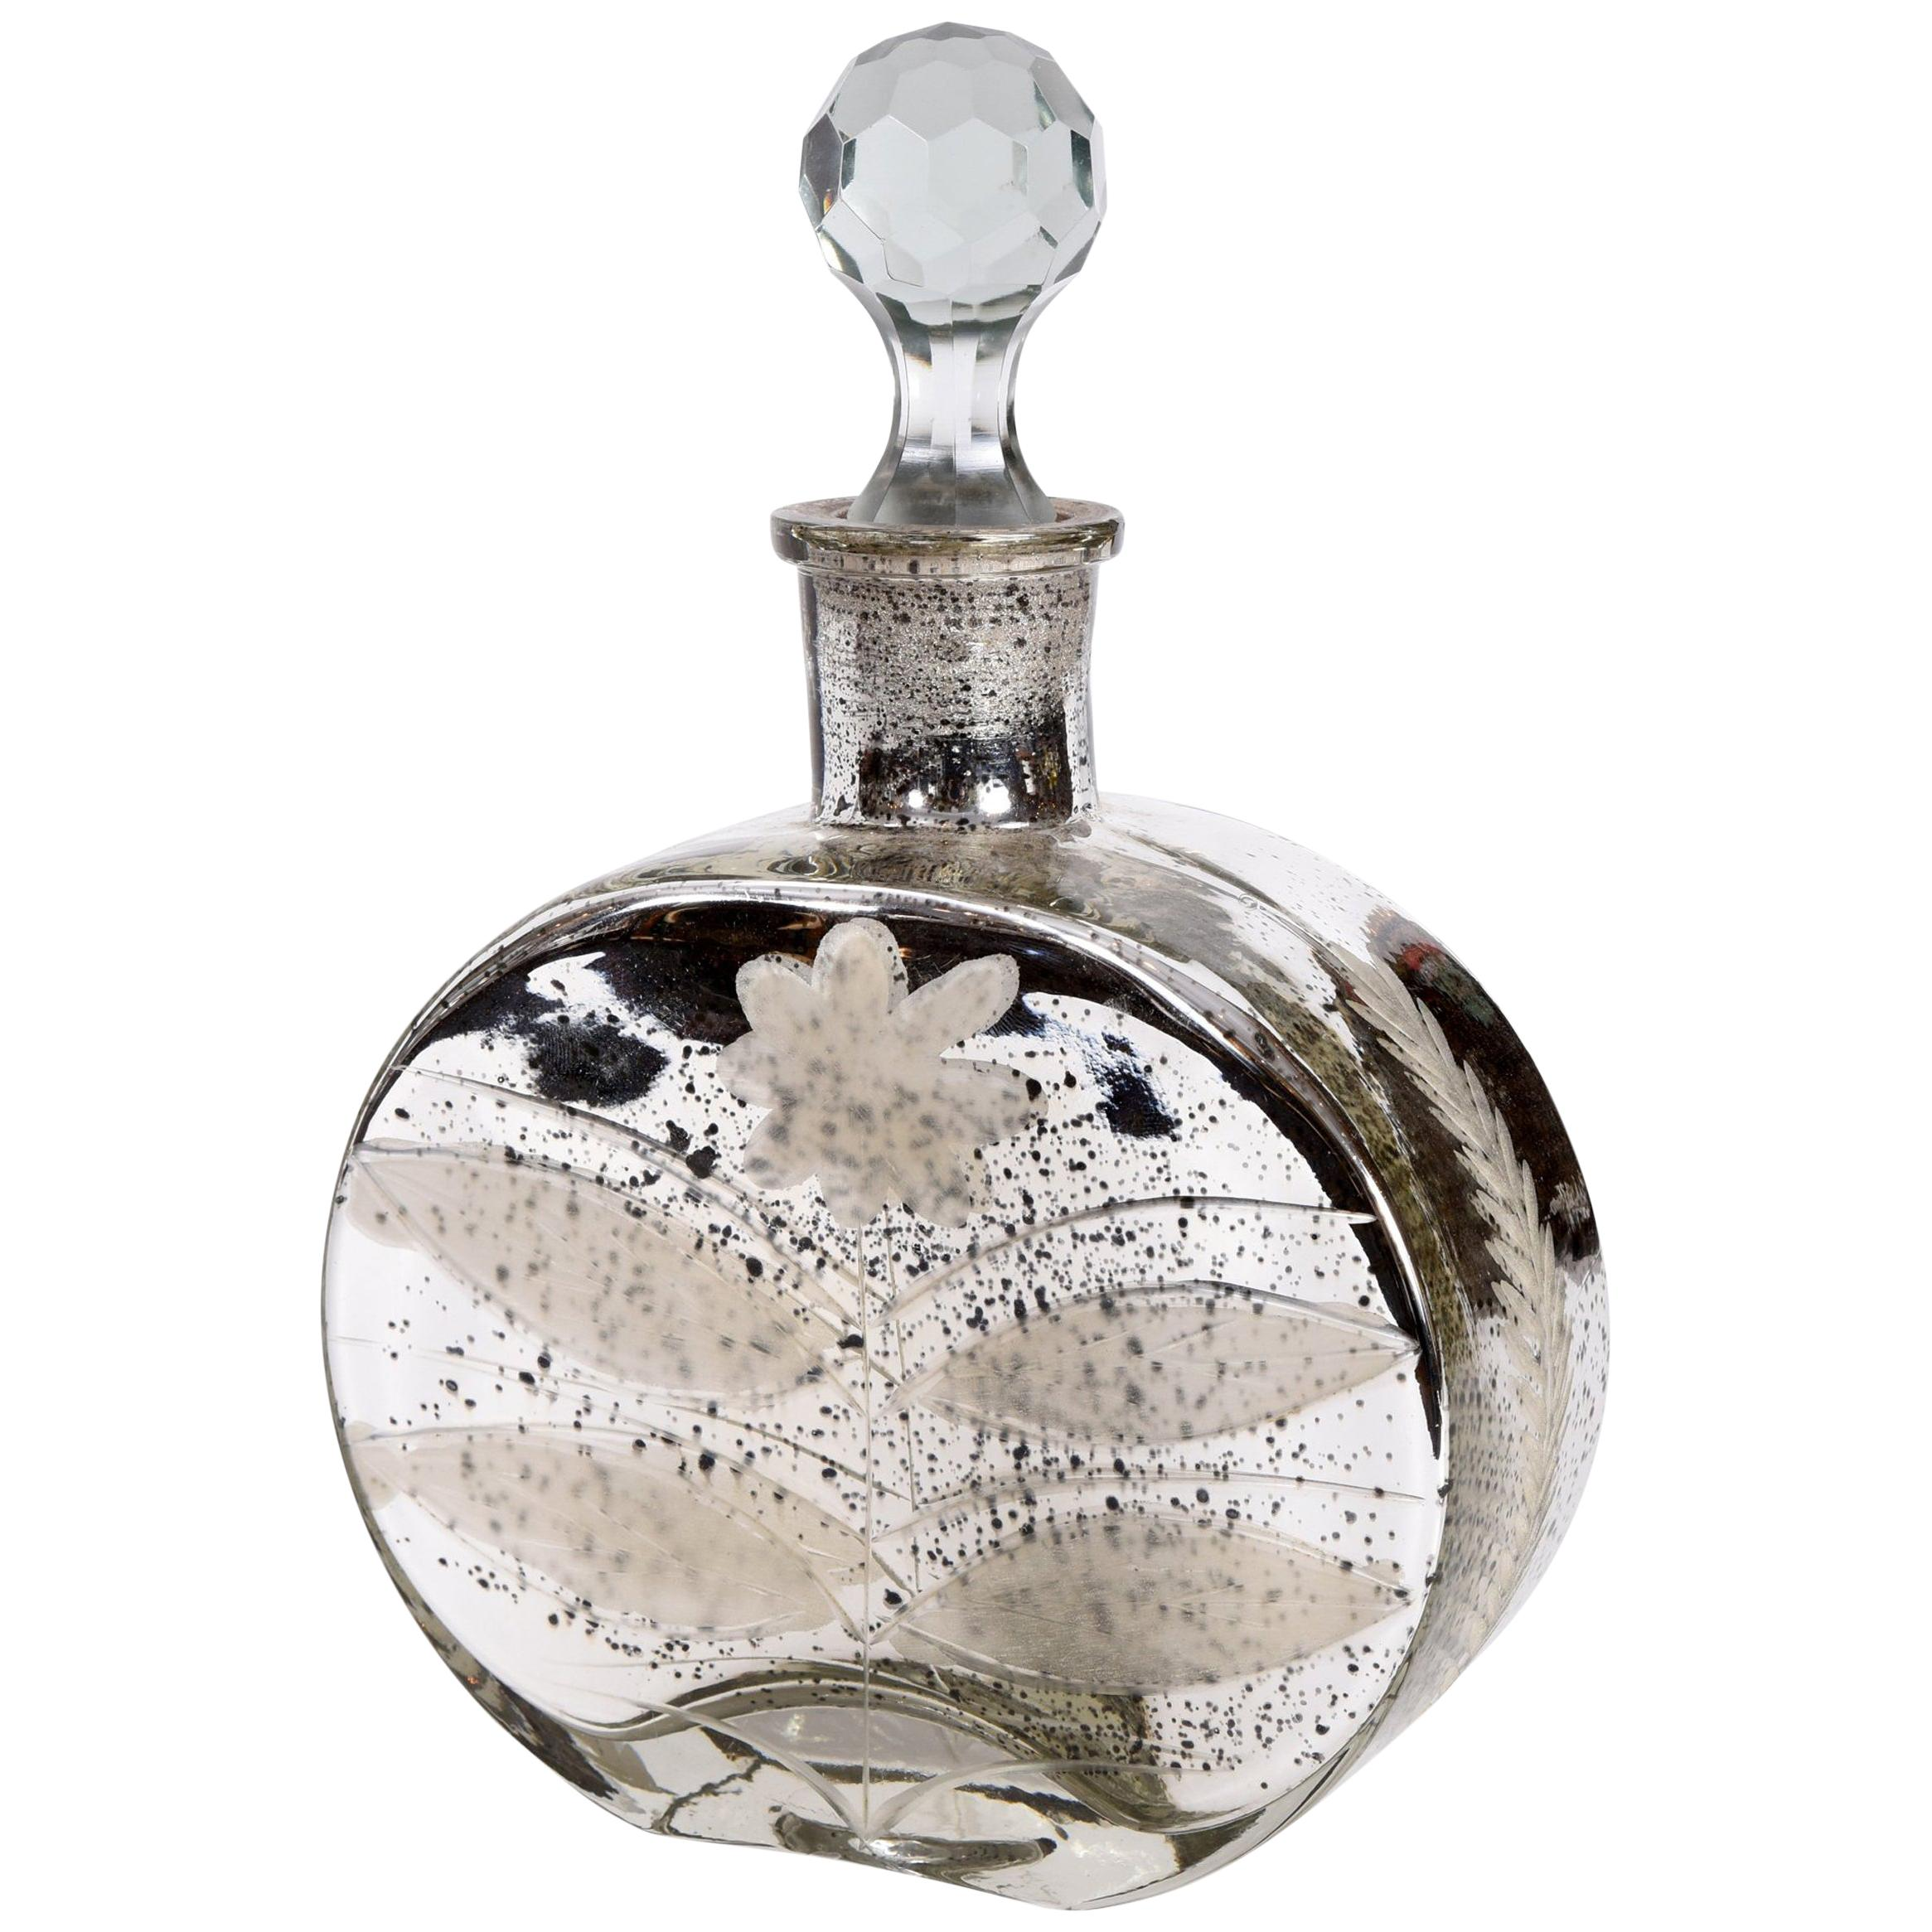 Mercury Glass Decorative Bottle Vanity Table Piece